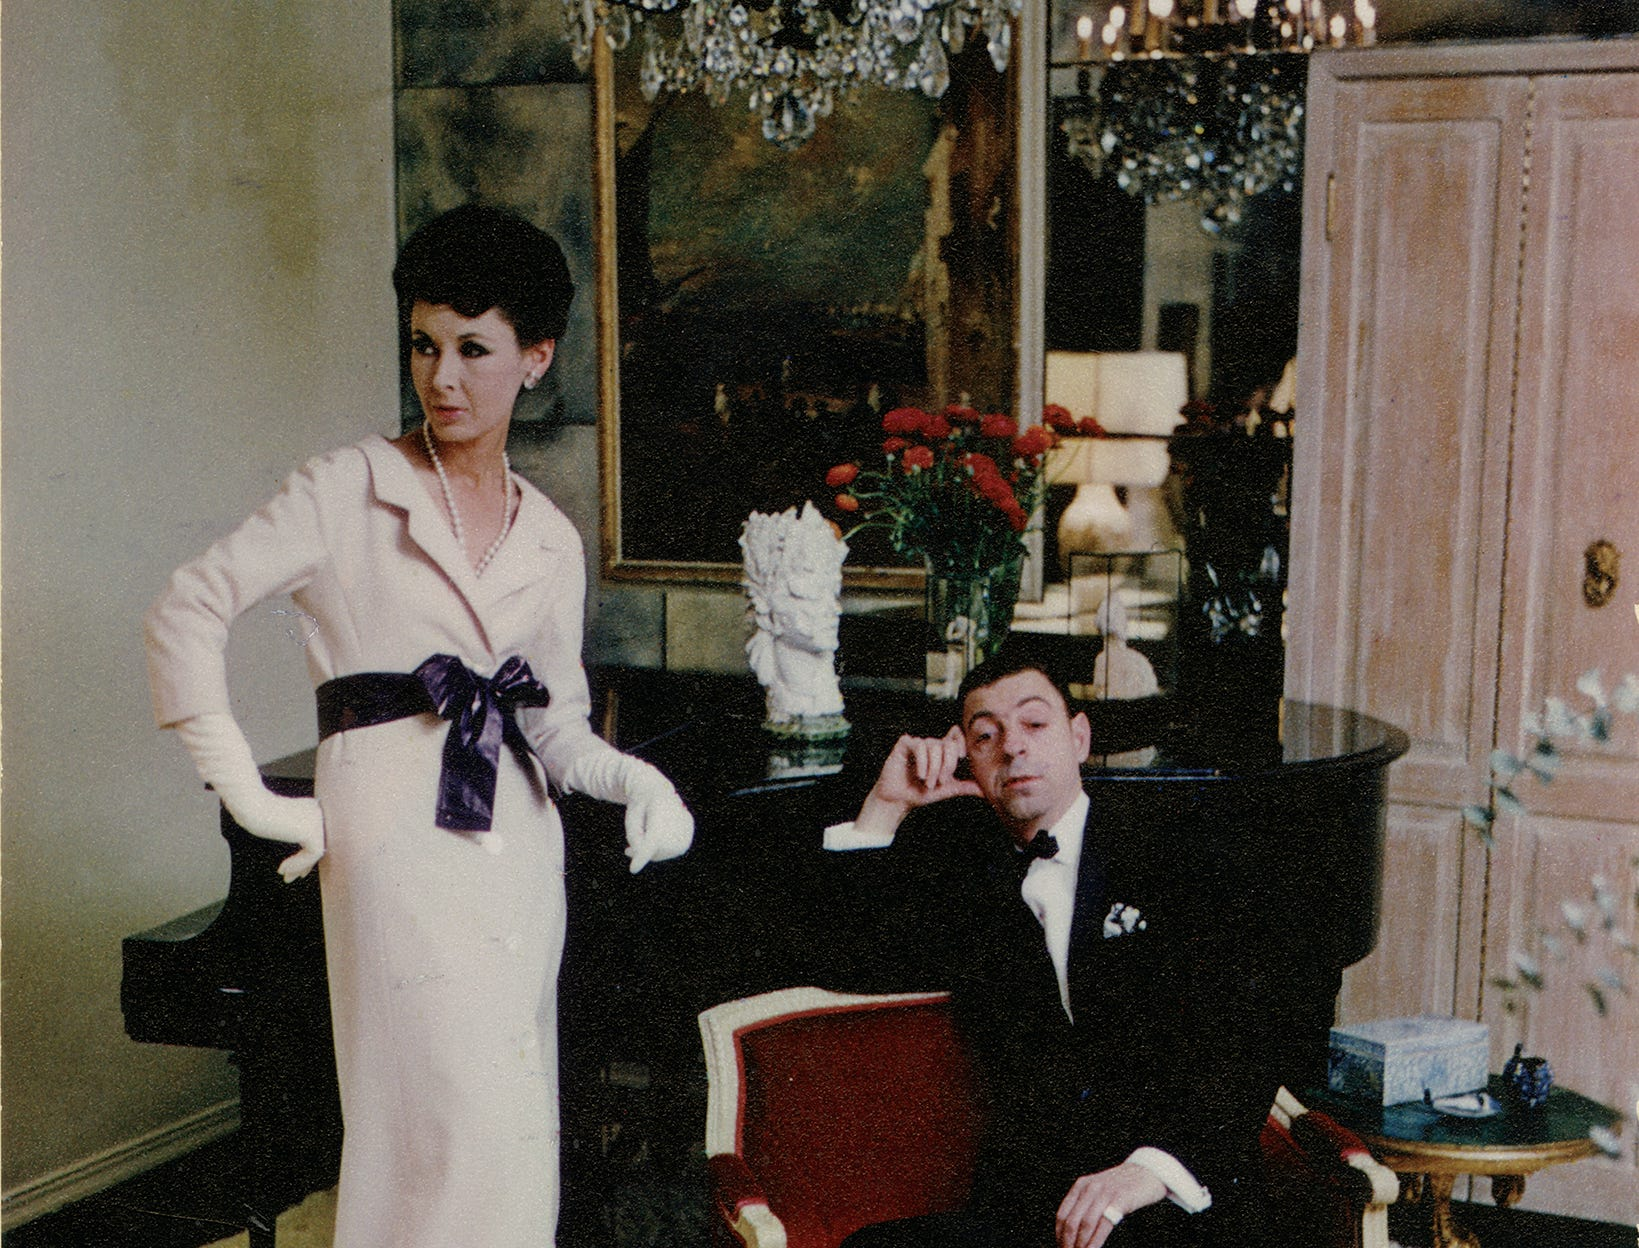 This is a portrait of James Galanos with model Pat Jones, circa 1960.